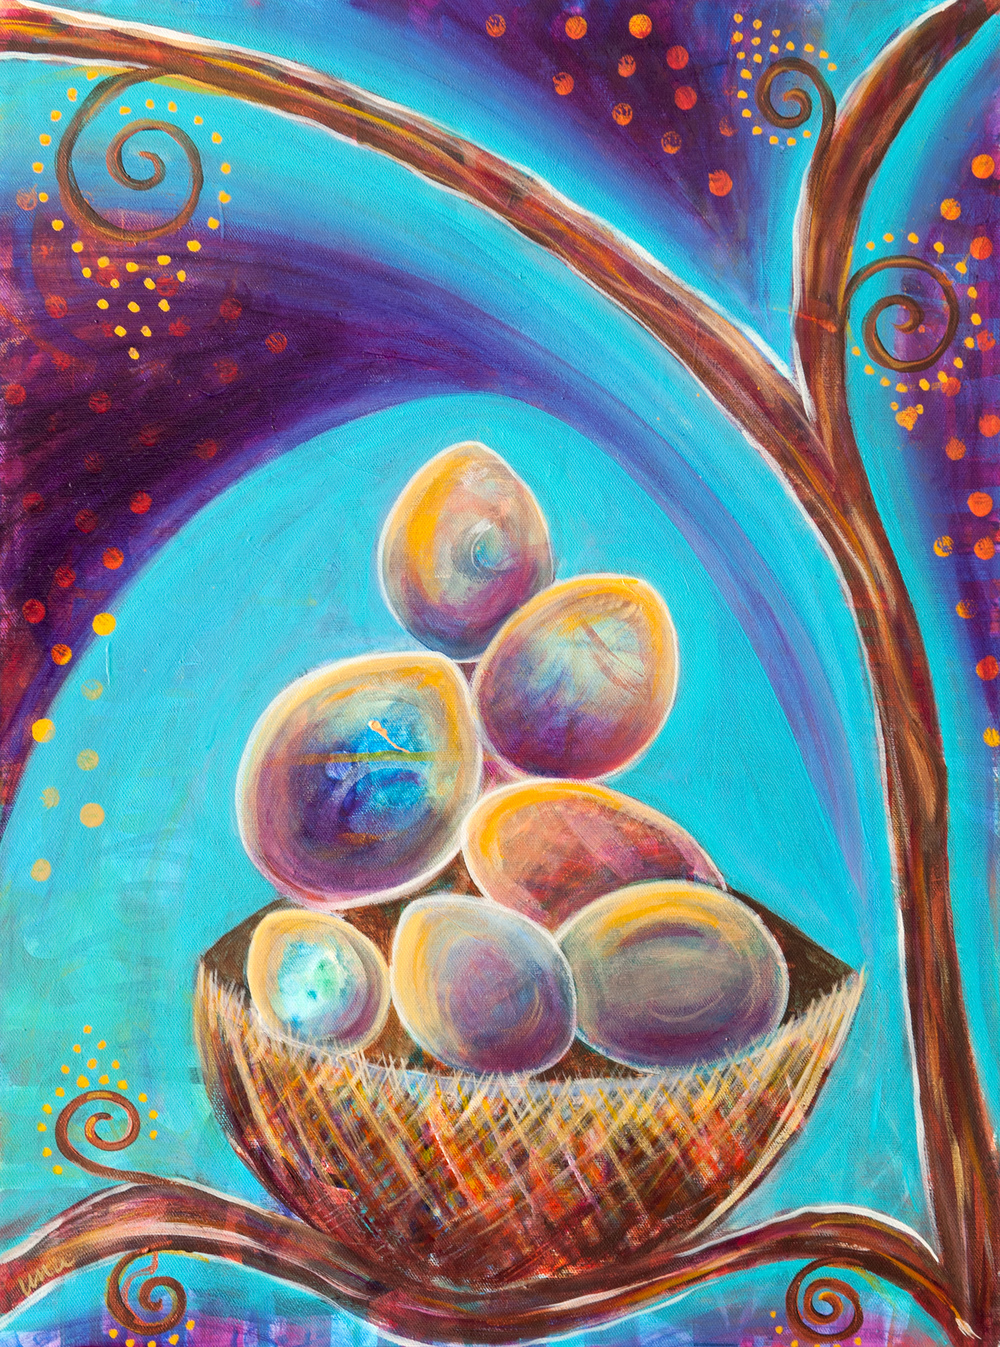 Nest of Eggs - Original and Prints Available